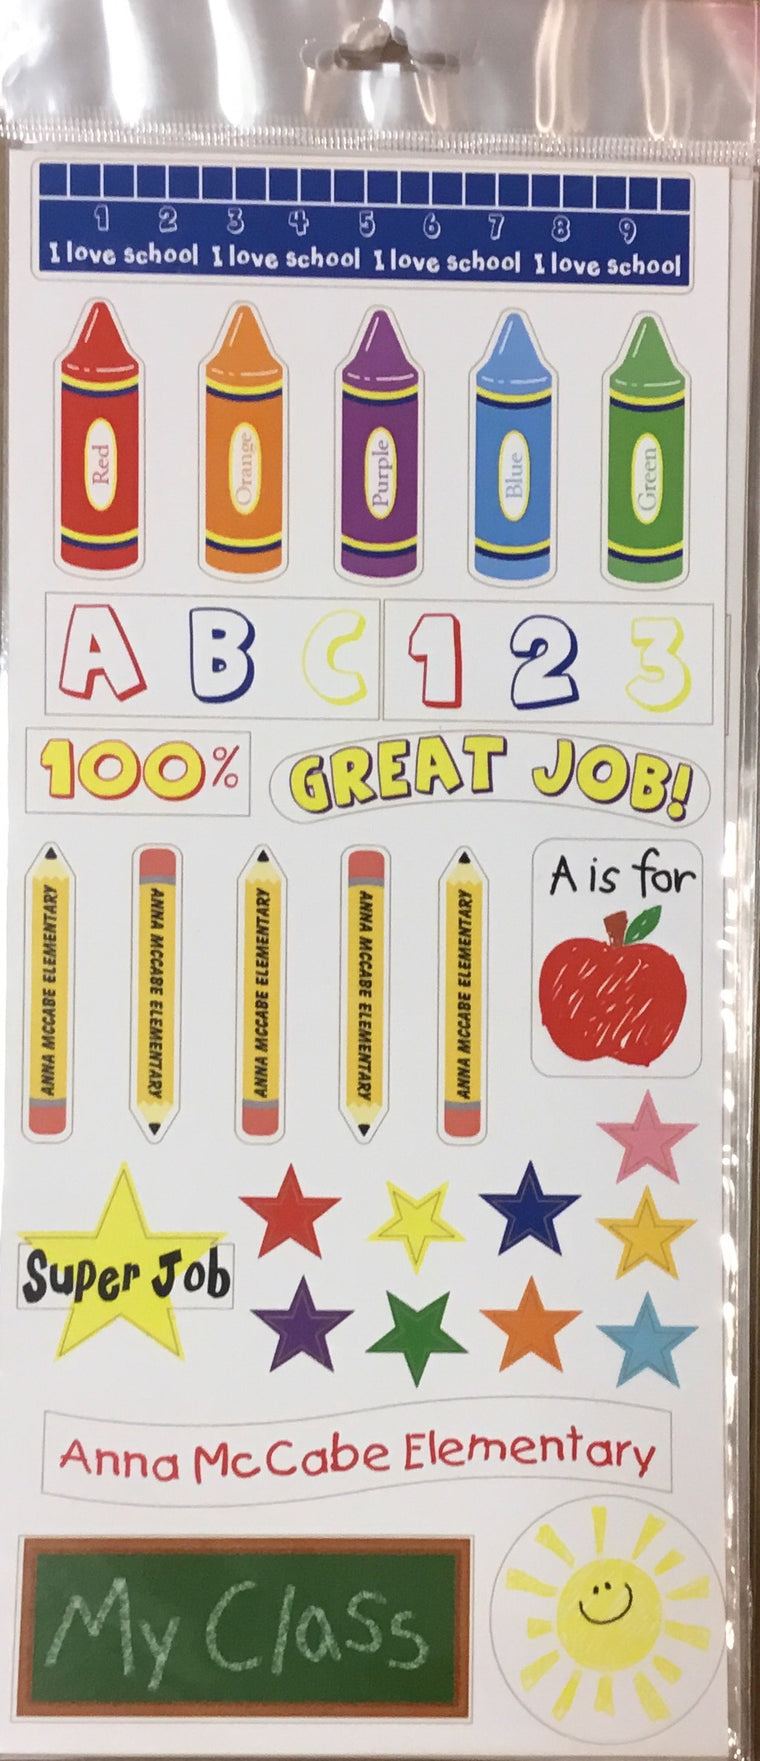 Anna McCabe School elementary rule stickers